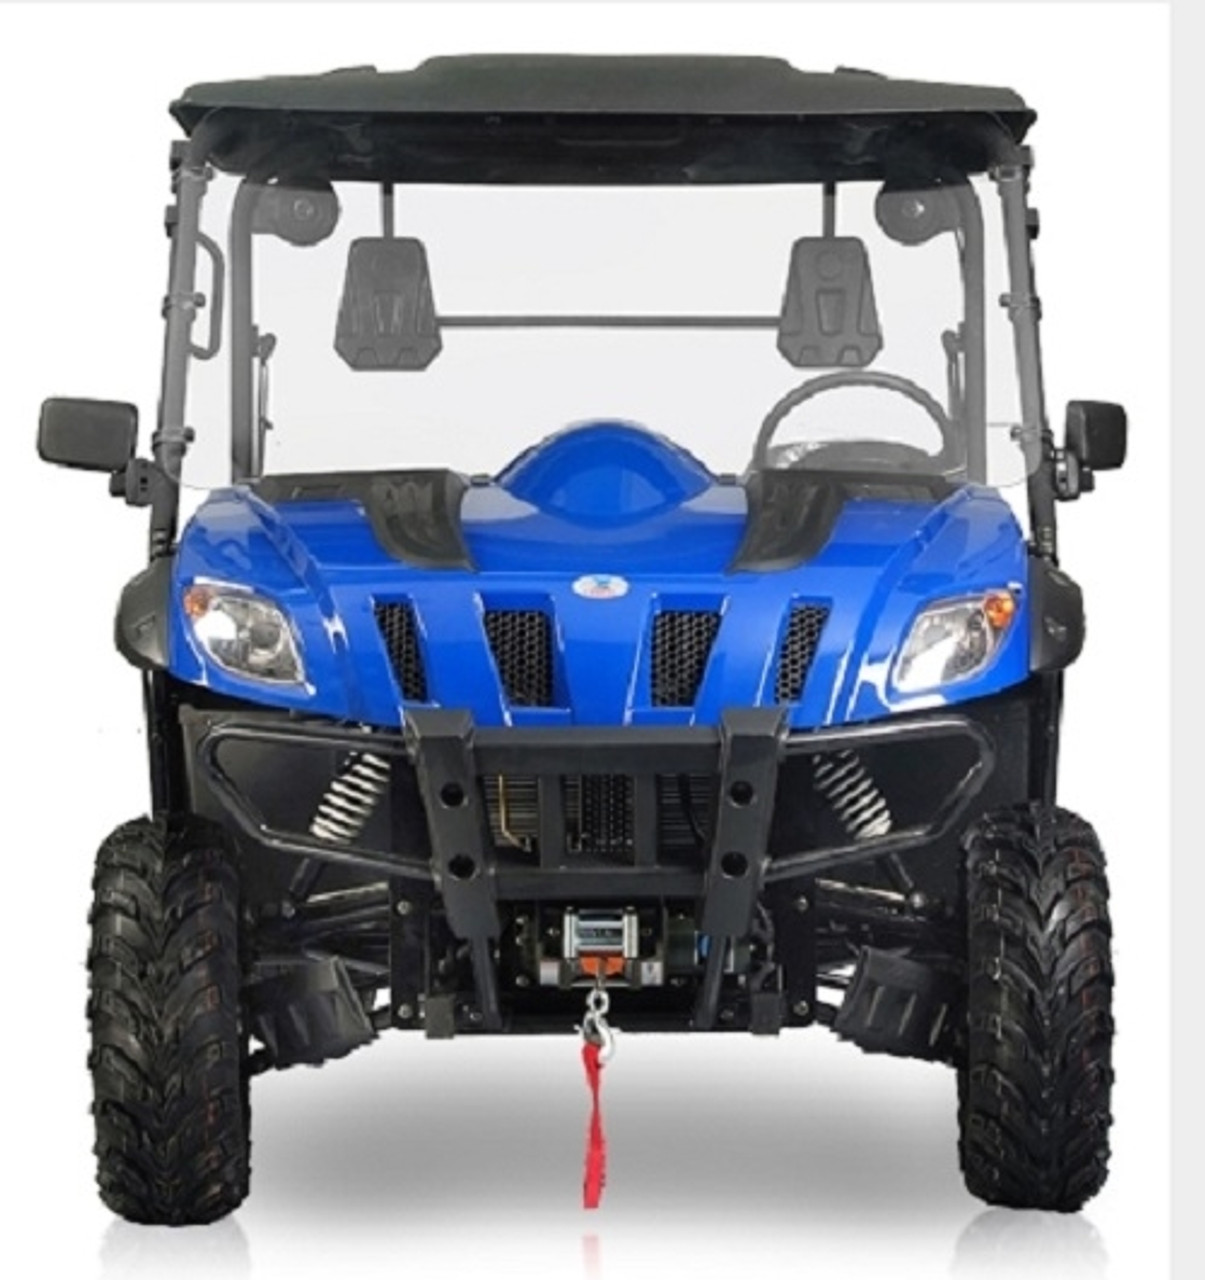 BMS Ranch Pony 600 EFI, 594cc, 37 HP, EFI - Water and Oil Cooled Engine